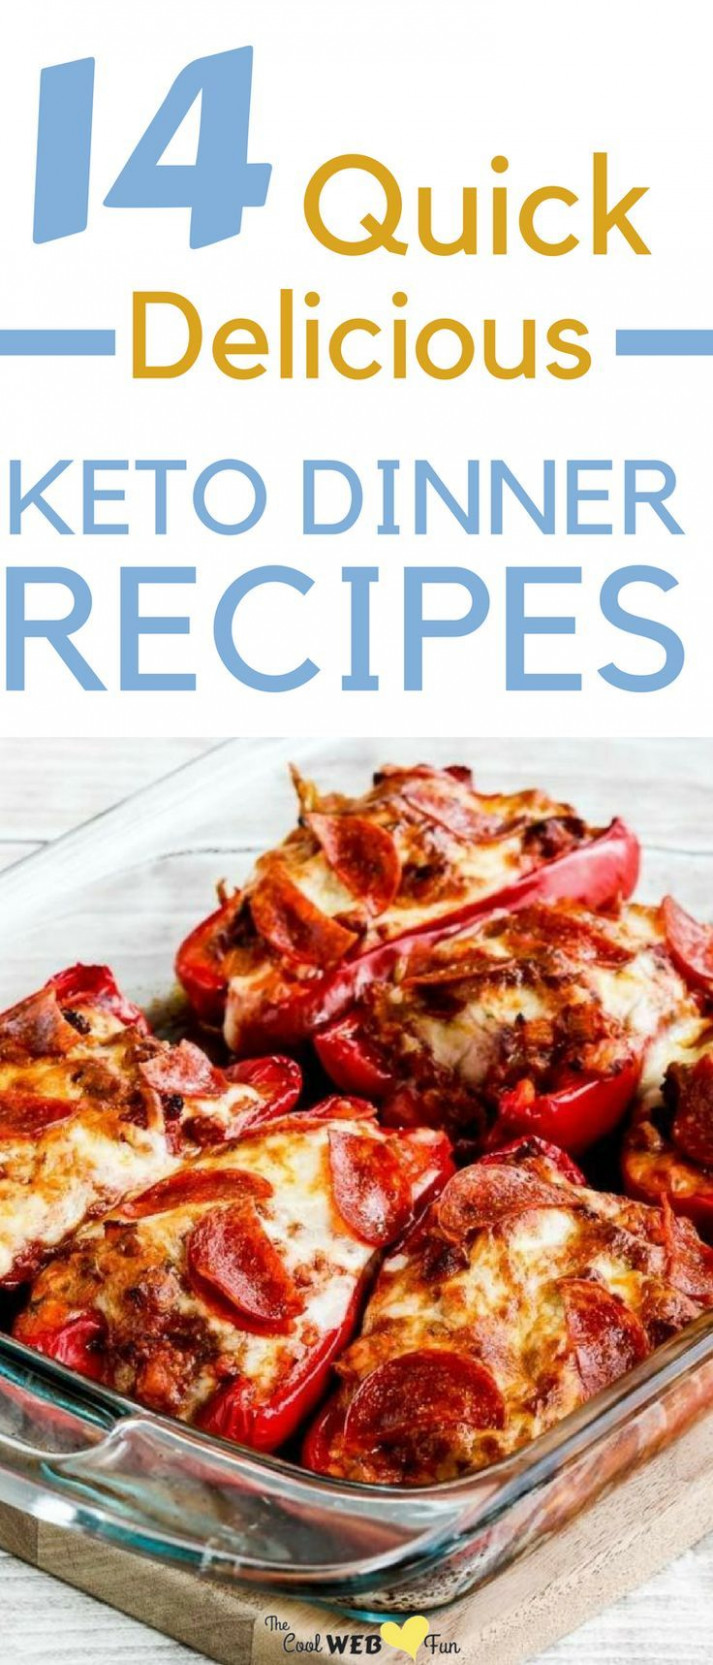 Keto Dinner: 12 Simple + Quick Keto Dinner Recipes to make ..